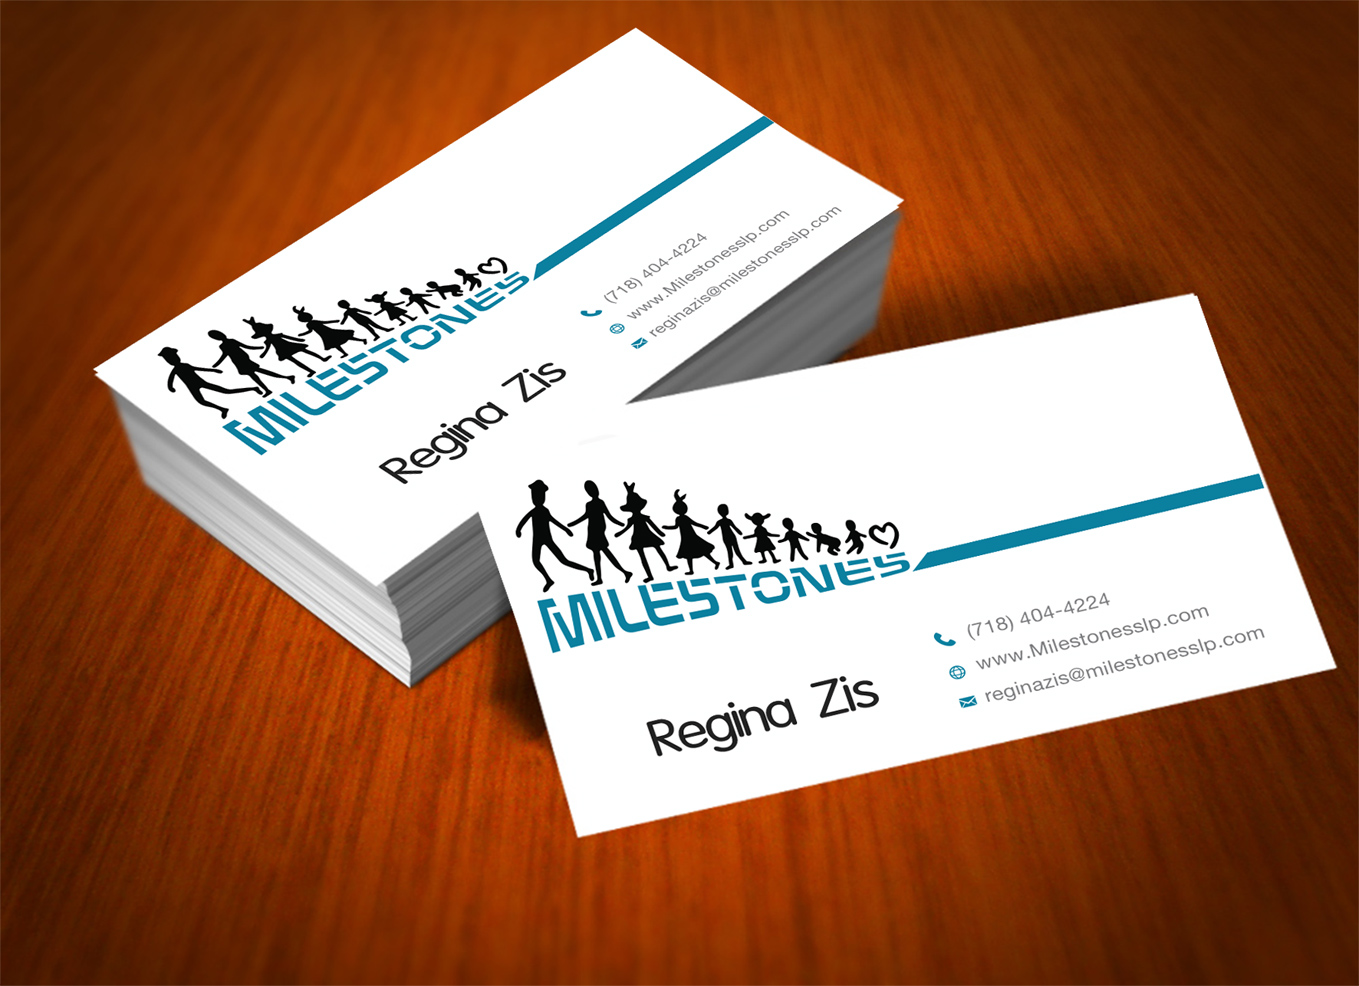 Elegant playful business business card design for milestones by business card design by unique panta for milestones design 13358634 reheart Choice Image